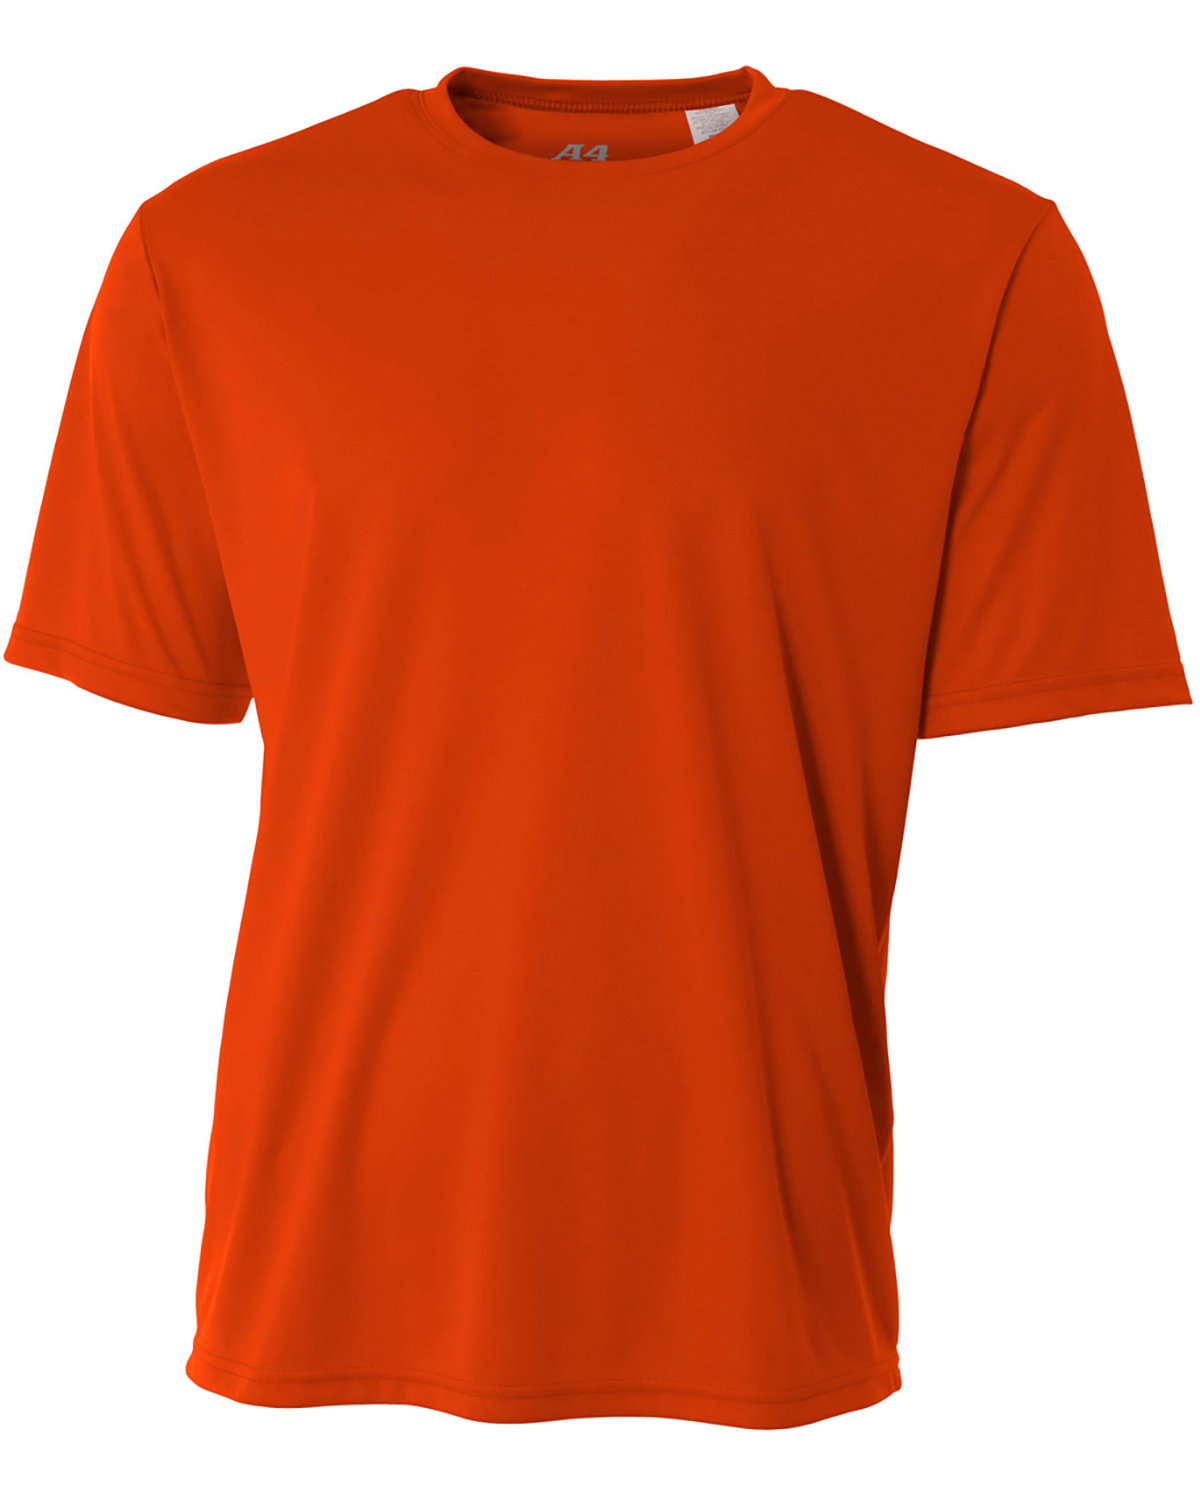 A4 Youth Cooling Performance T-Shirt ATHLETIC ORANGE